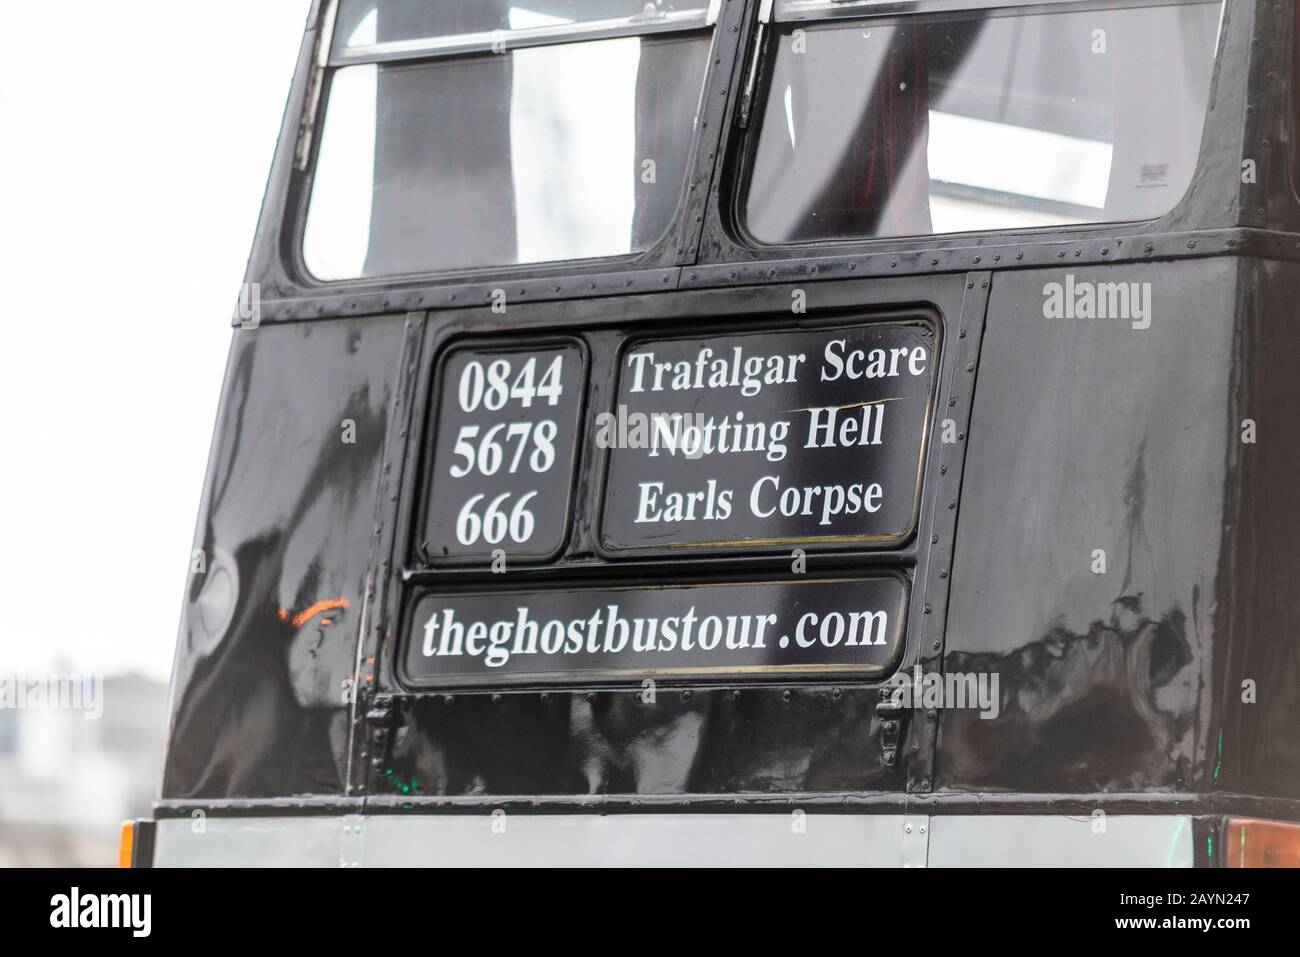 Ghostbustour old London Routemaster bus painted black. Ghost Bus Tours retired London bus used for spooky transport around city. Twisted destinations Stock Photo